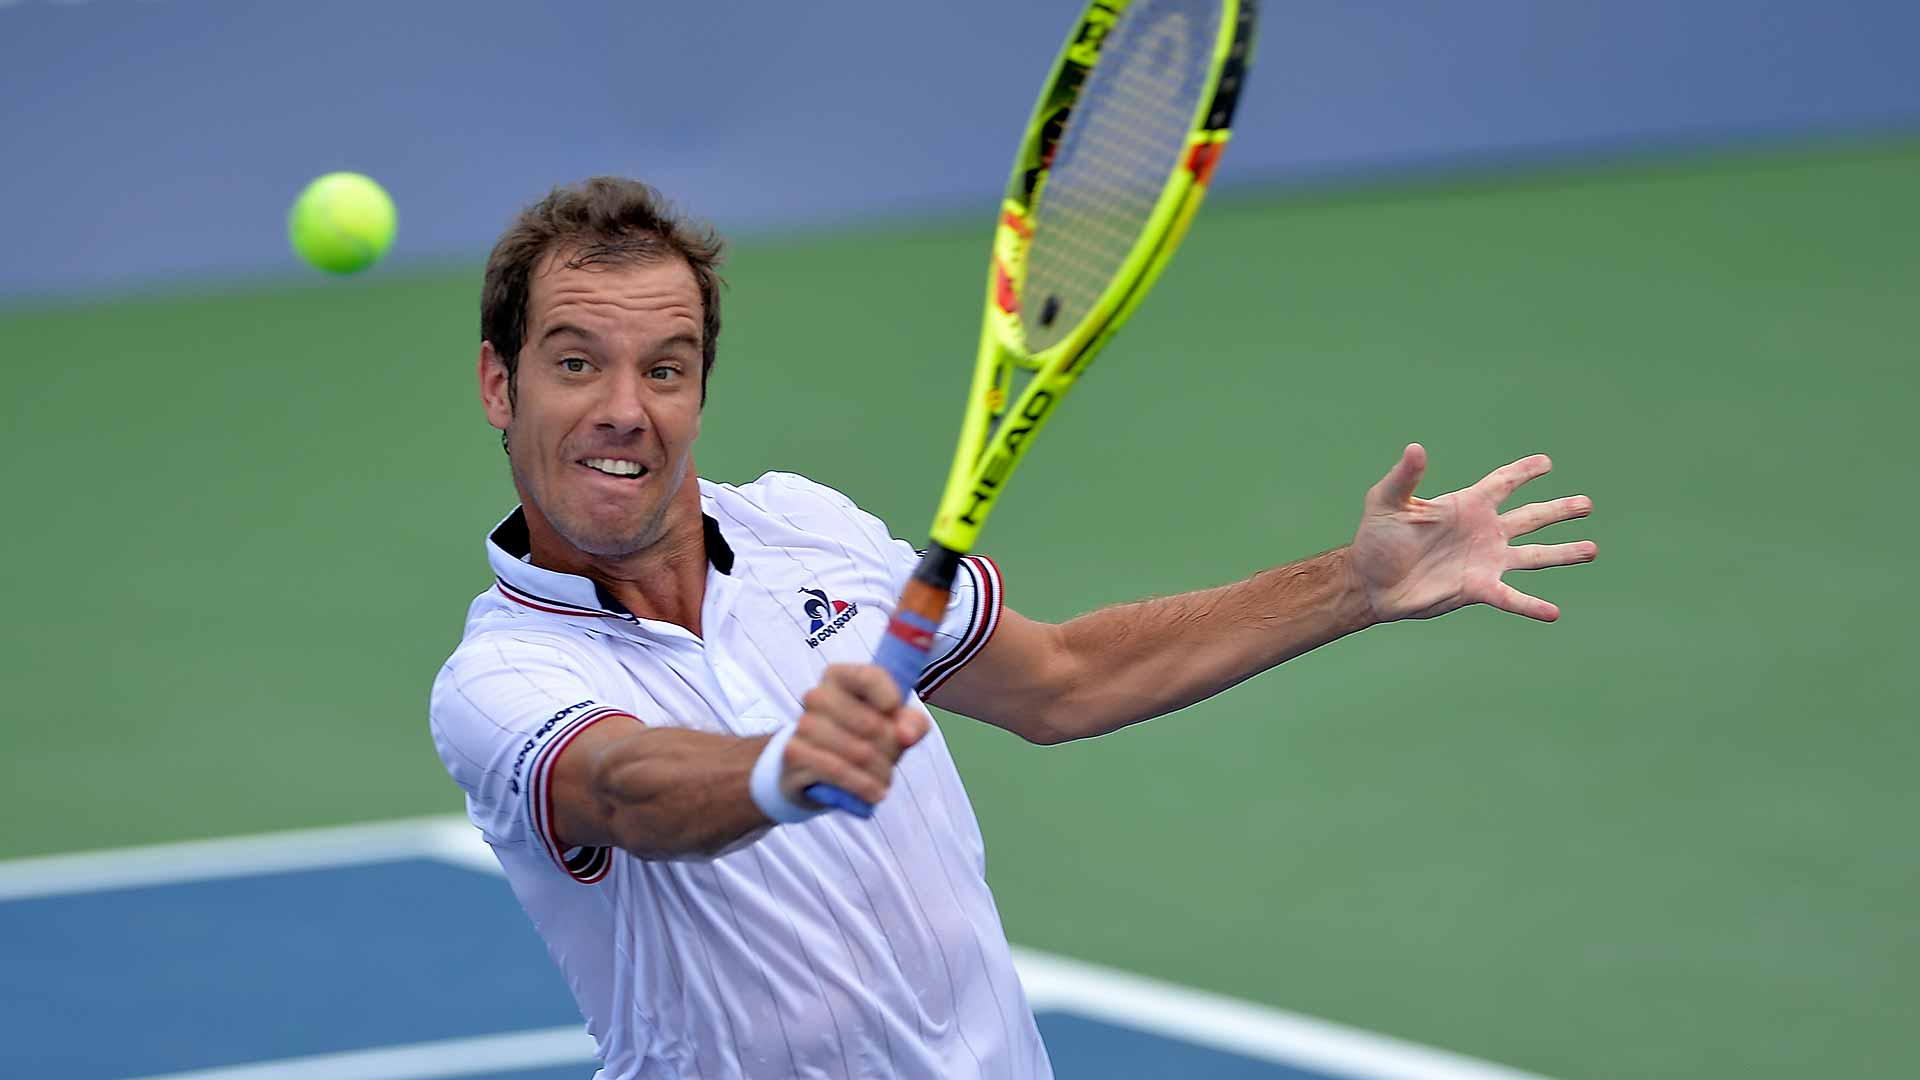 Richard Gasquet downs Stephane Robert to move into the quarter-finals.